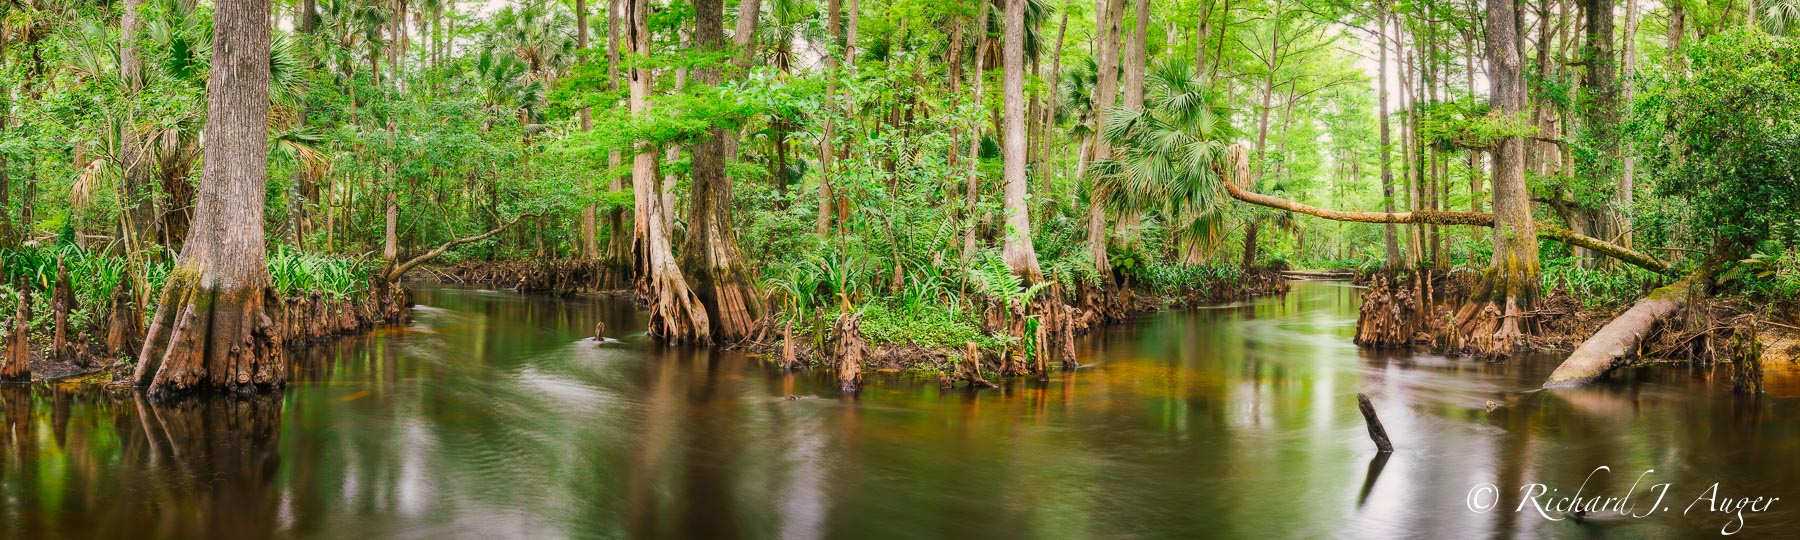 Loxahatchee River, Riverbend Park, jonathan dickinson state park, Florida, swamp, cypress, palm trees, blackwater, lanscape, photograph, photo, photographer, green, brown